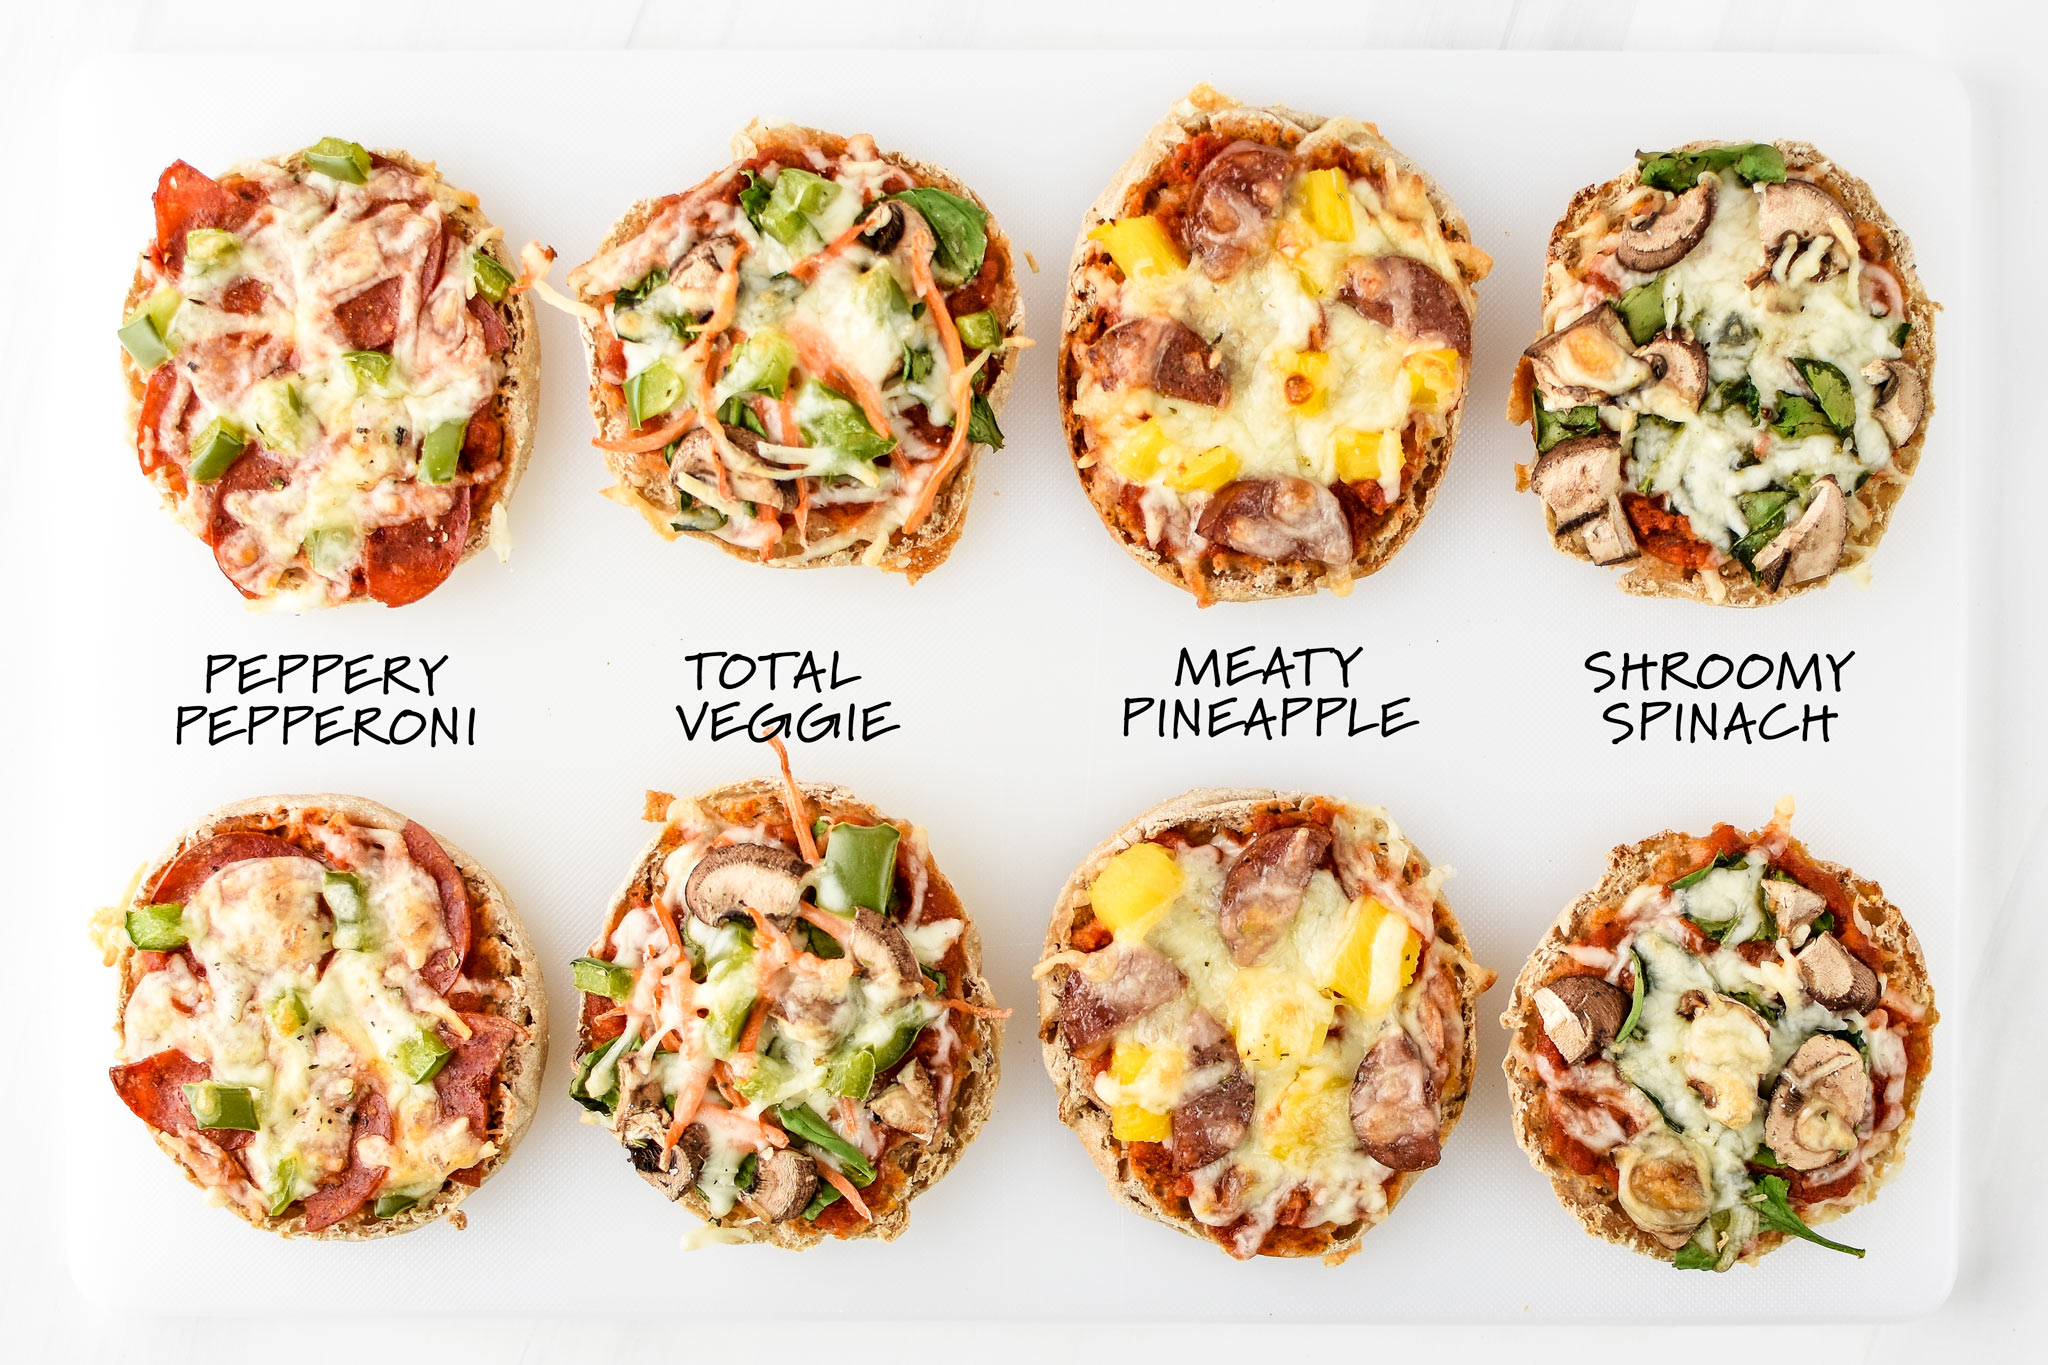 Four kinds of english muffin mini pizzas to try for lunch meal prep!